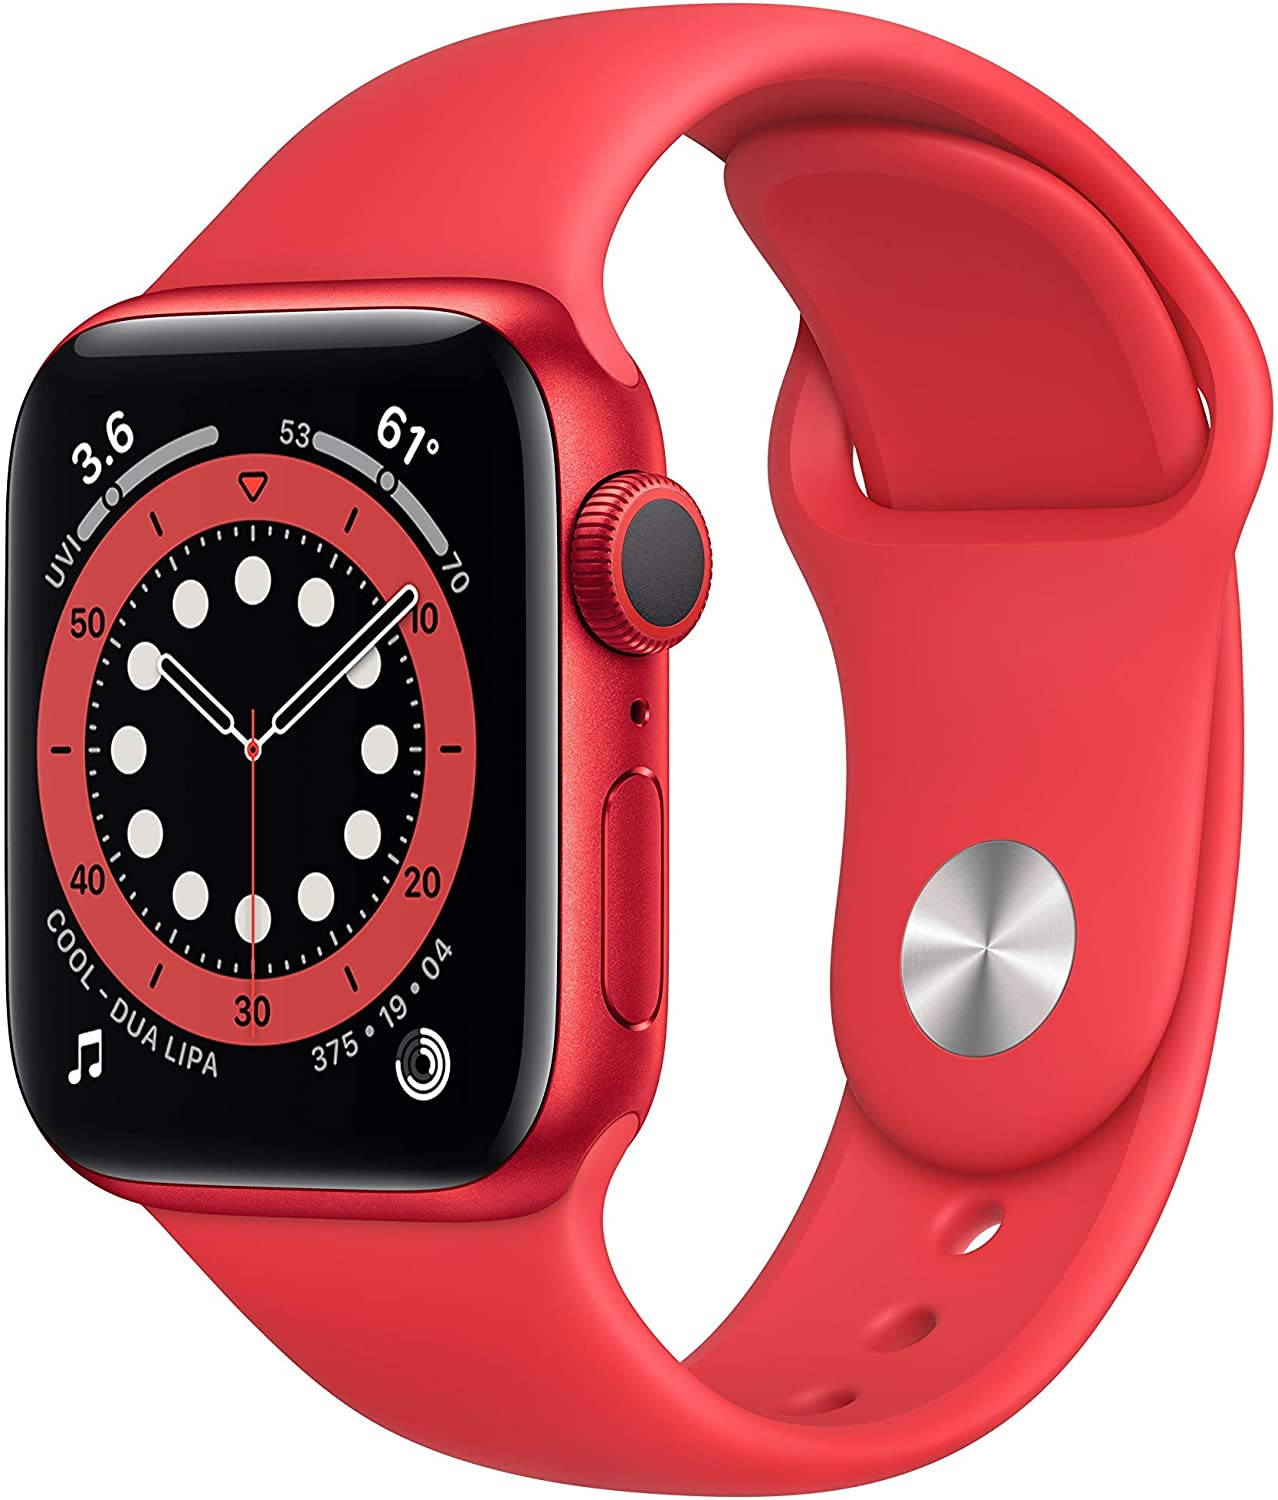 Apple Watch Series 6 (GPS, 40mm) - Red Aluminum Case with Red Sport Band (Renewed)